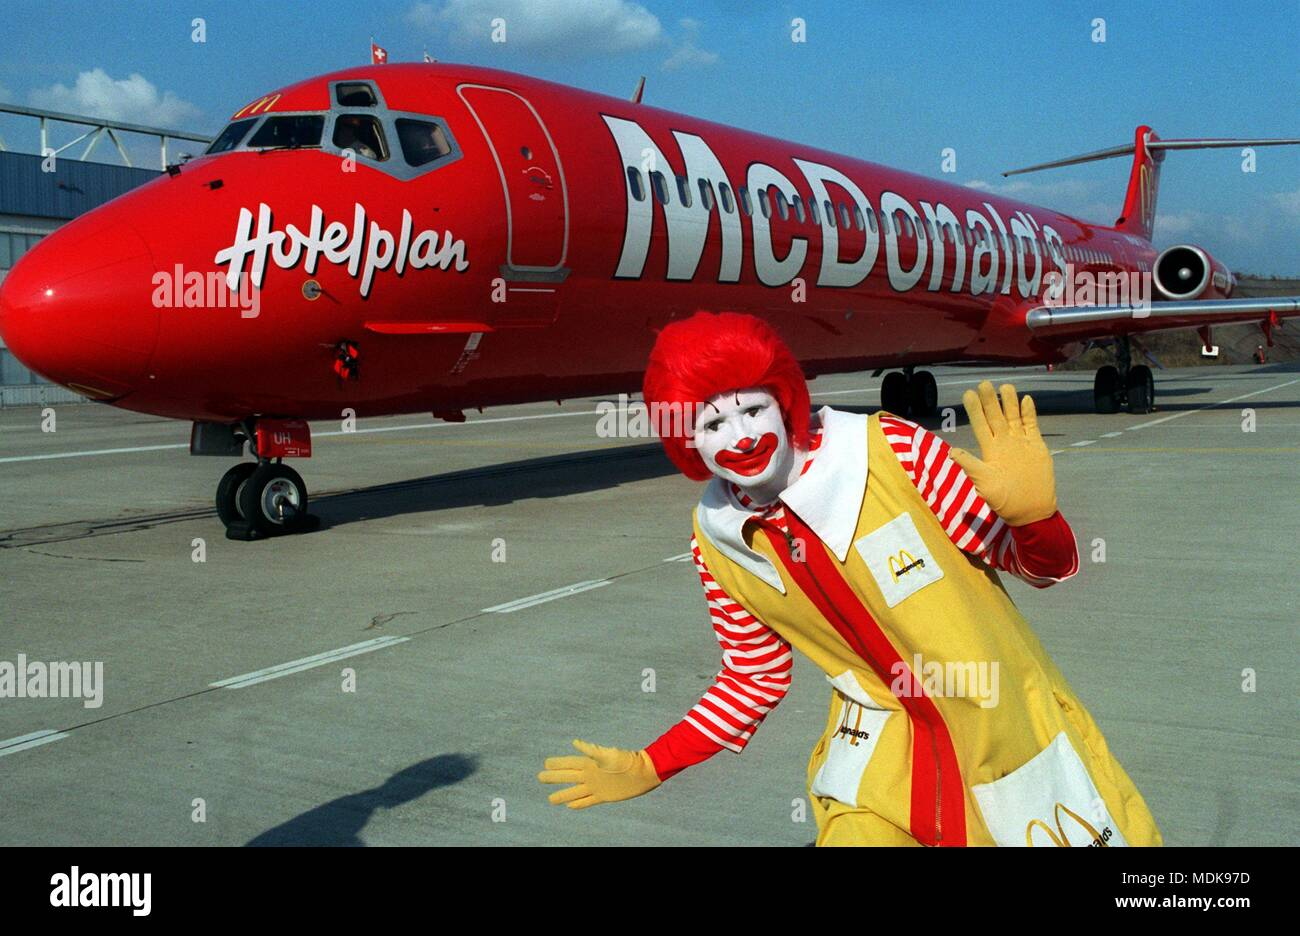 Ronald McDonald, clown of the American fast food chain McDonald's, presents the world's first Jet with McDonald's livery at the airport Basel/Mulhouse on 29.03.1996. The bright red McDonnell Douglas MD-83 with the white lettering of the fast food chain is used from 01.04.1996 by the Swiss Crossair (Swissair subsidiary) in the European holiday charter traffic. The Swiss tour operator Hotelplan participates in the company.   usage worldwide - Stock Image